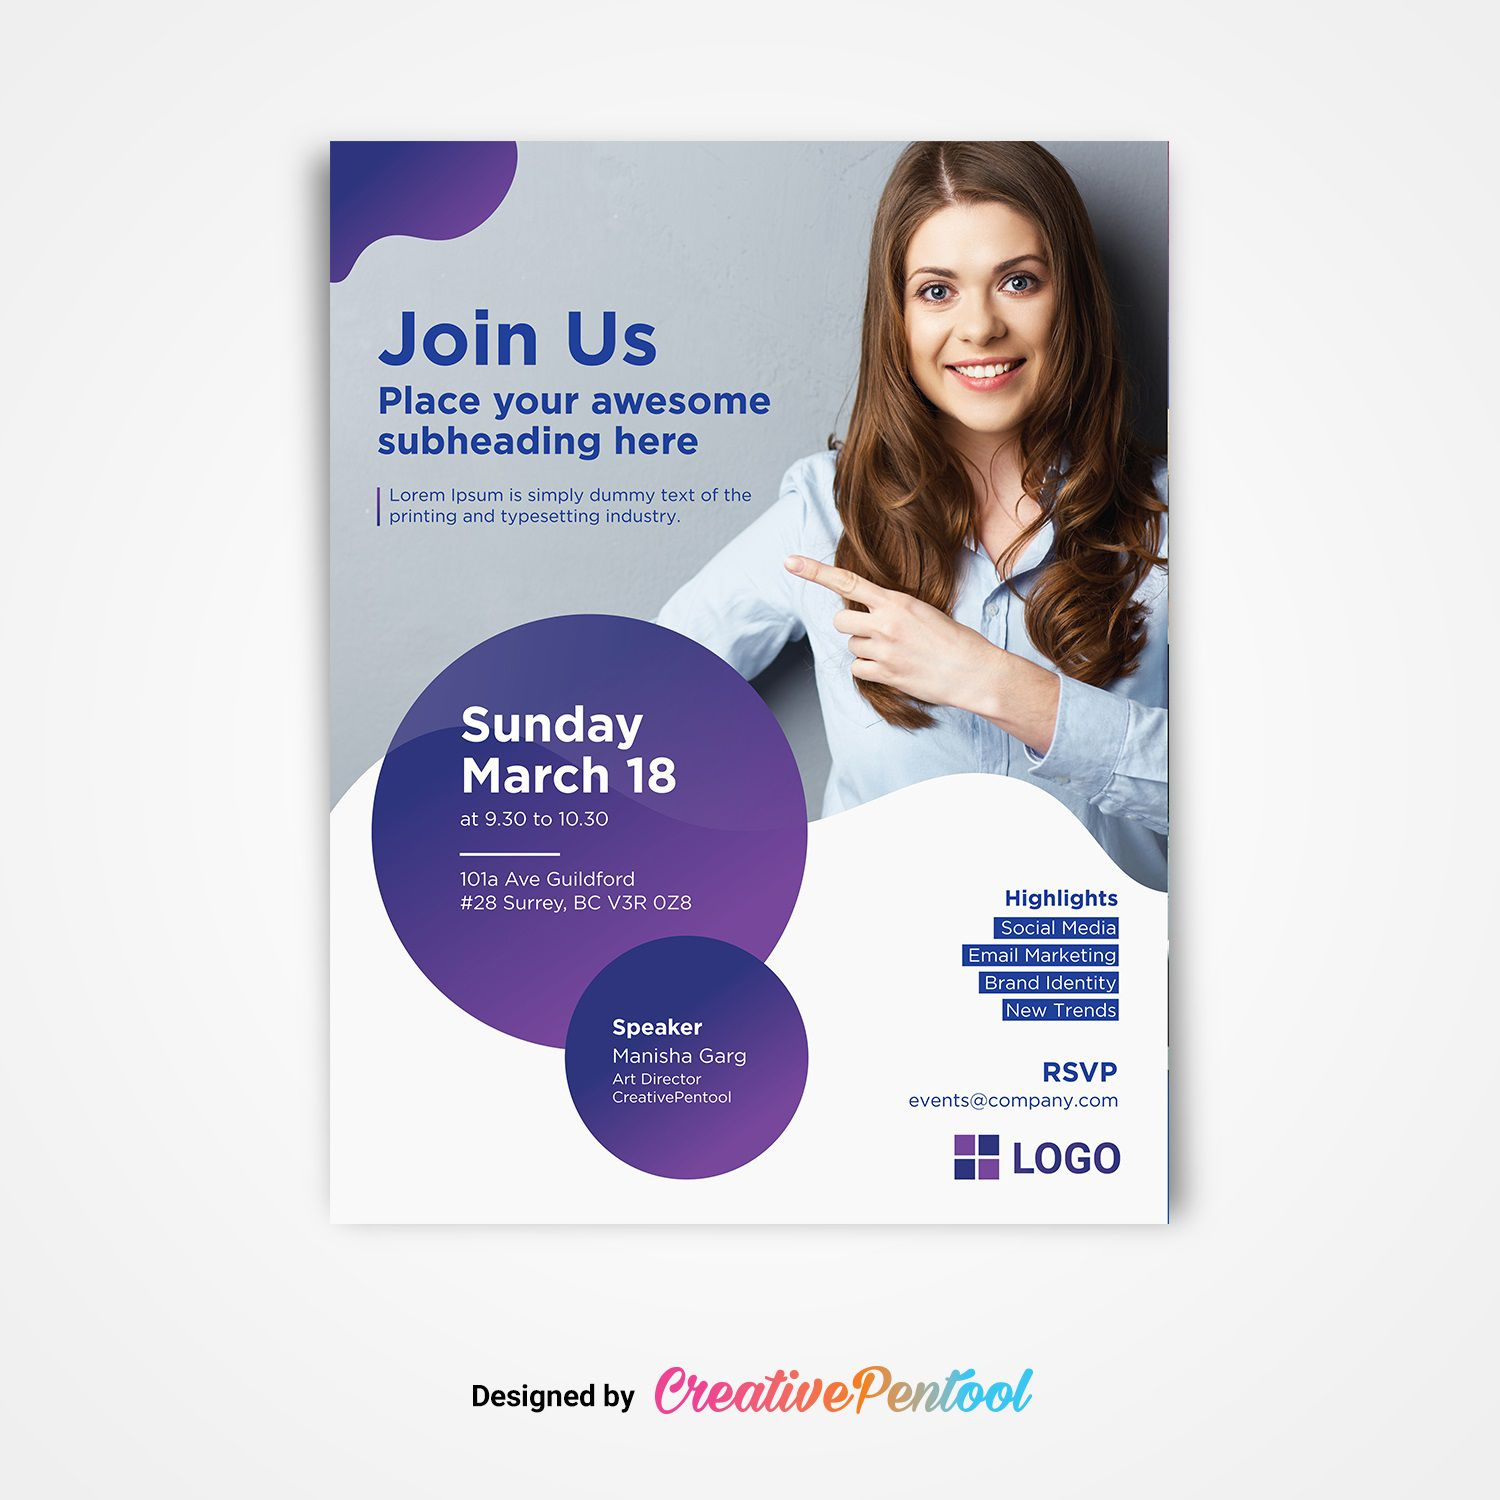 009 Unforgettable Free Event Flyer Template Photo  Printable Church PlanningFull